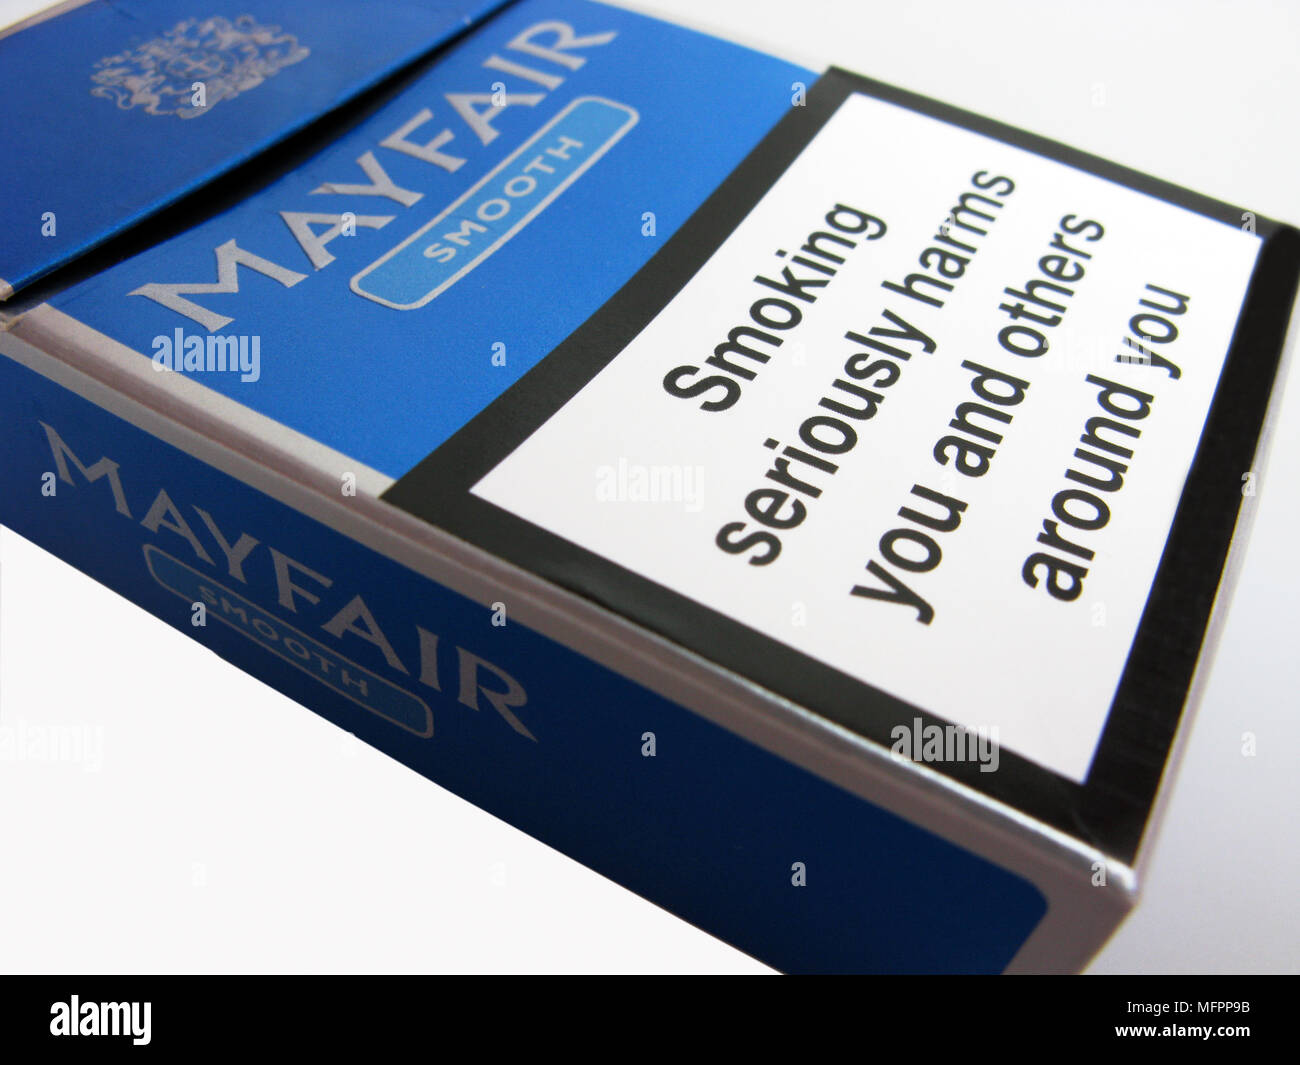 A cigarette packet with a warning on about seriously harming yourself by smoking - Stock Image